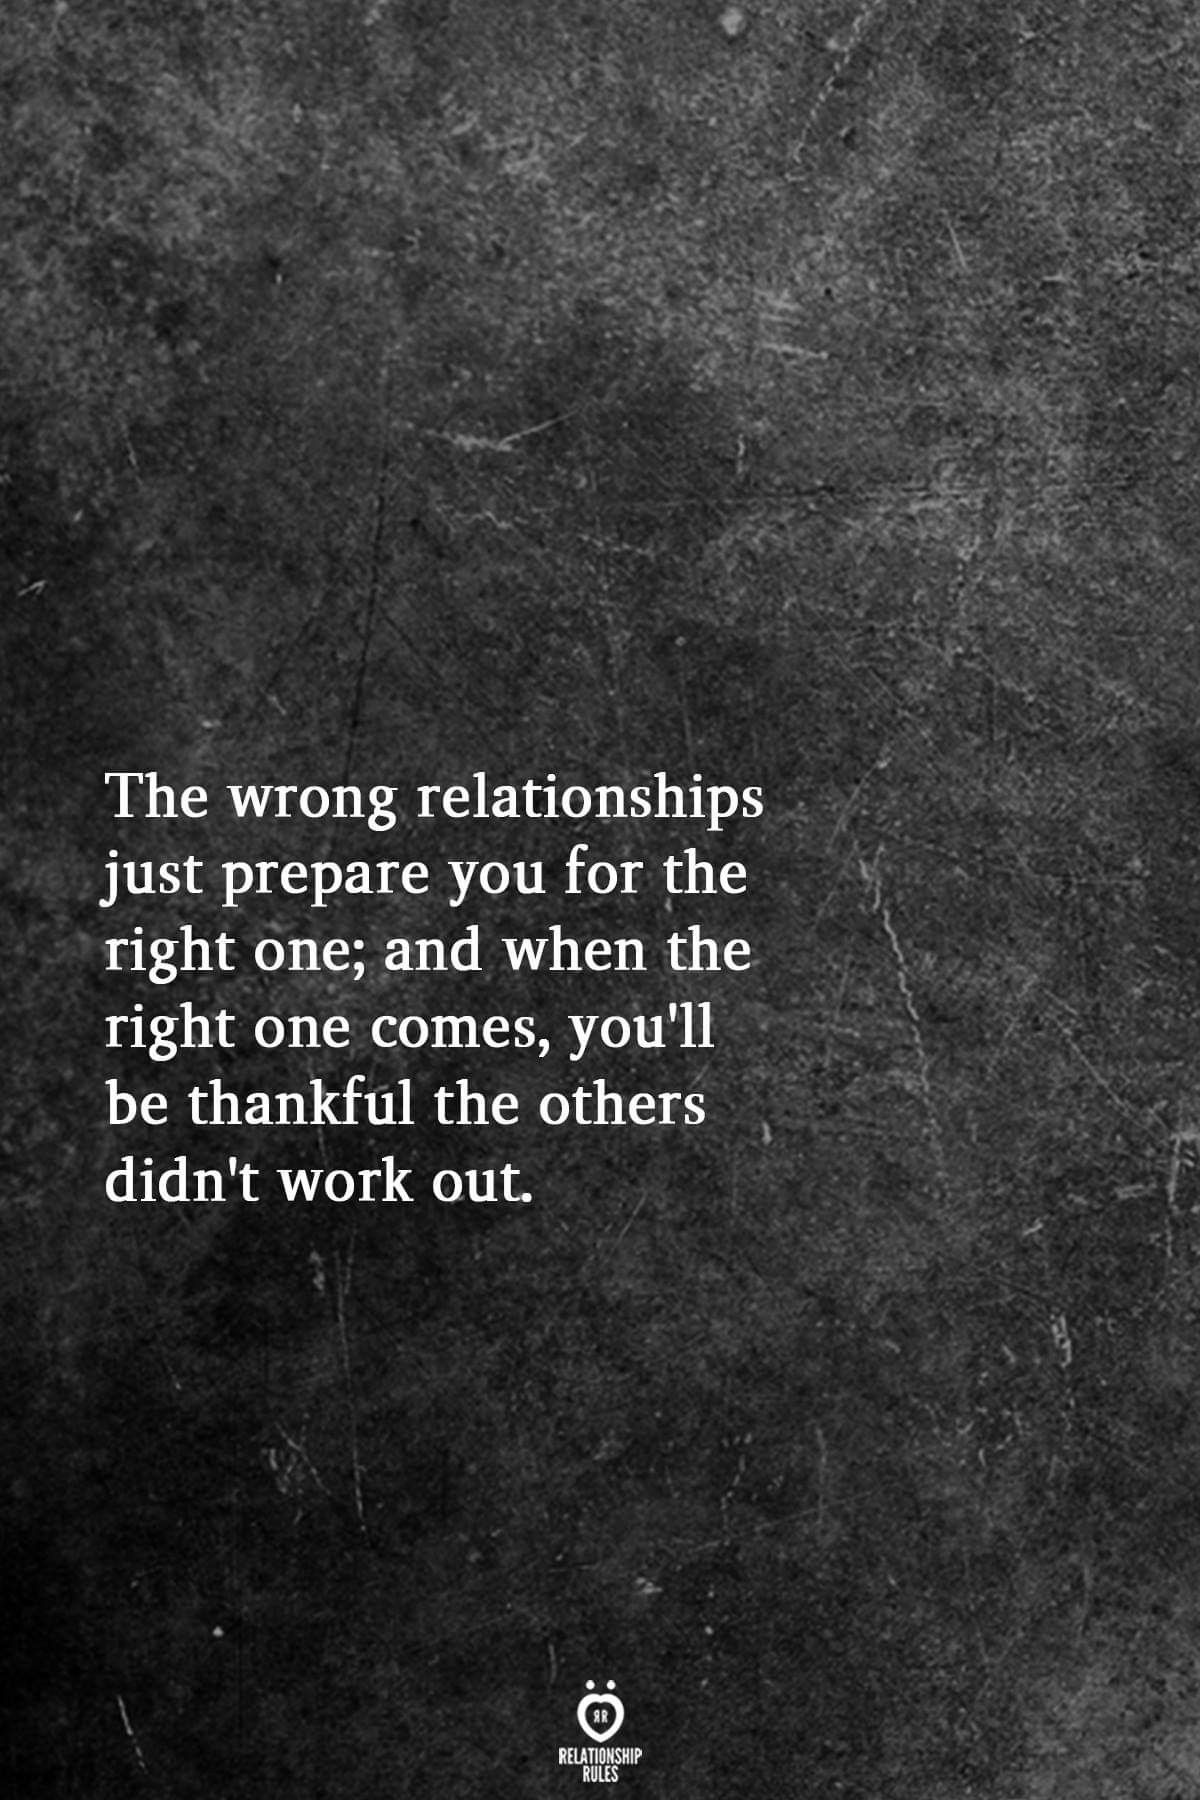 Pin by Tina Marie on relationship rules quotes